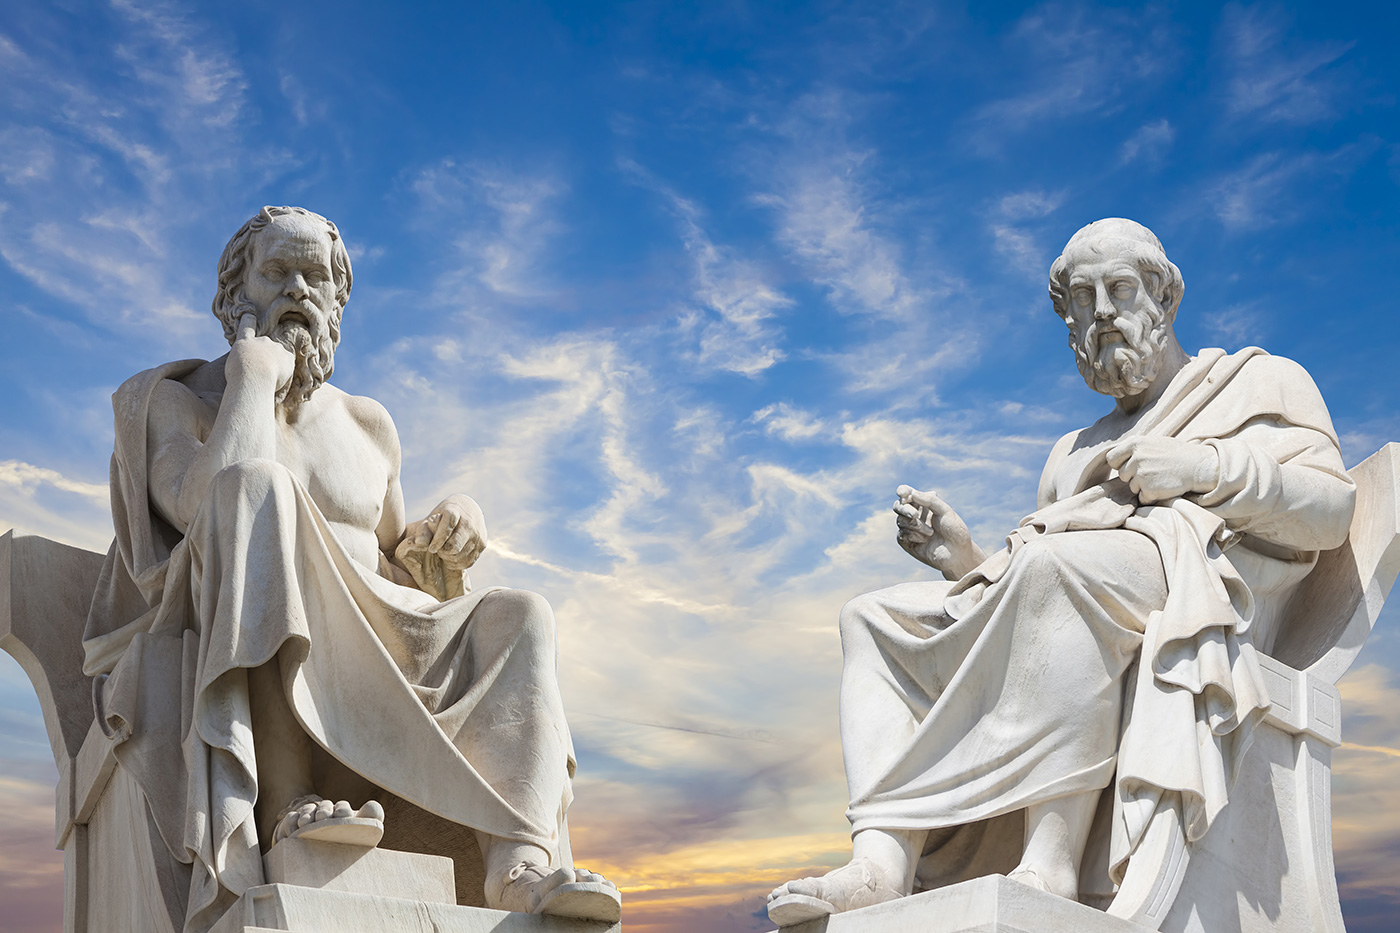 A stock image of two statues of Plato and Socrates - the great ancient Greek philosophers.